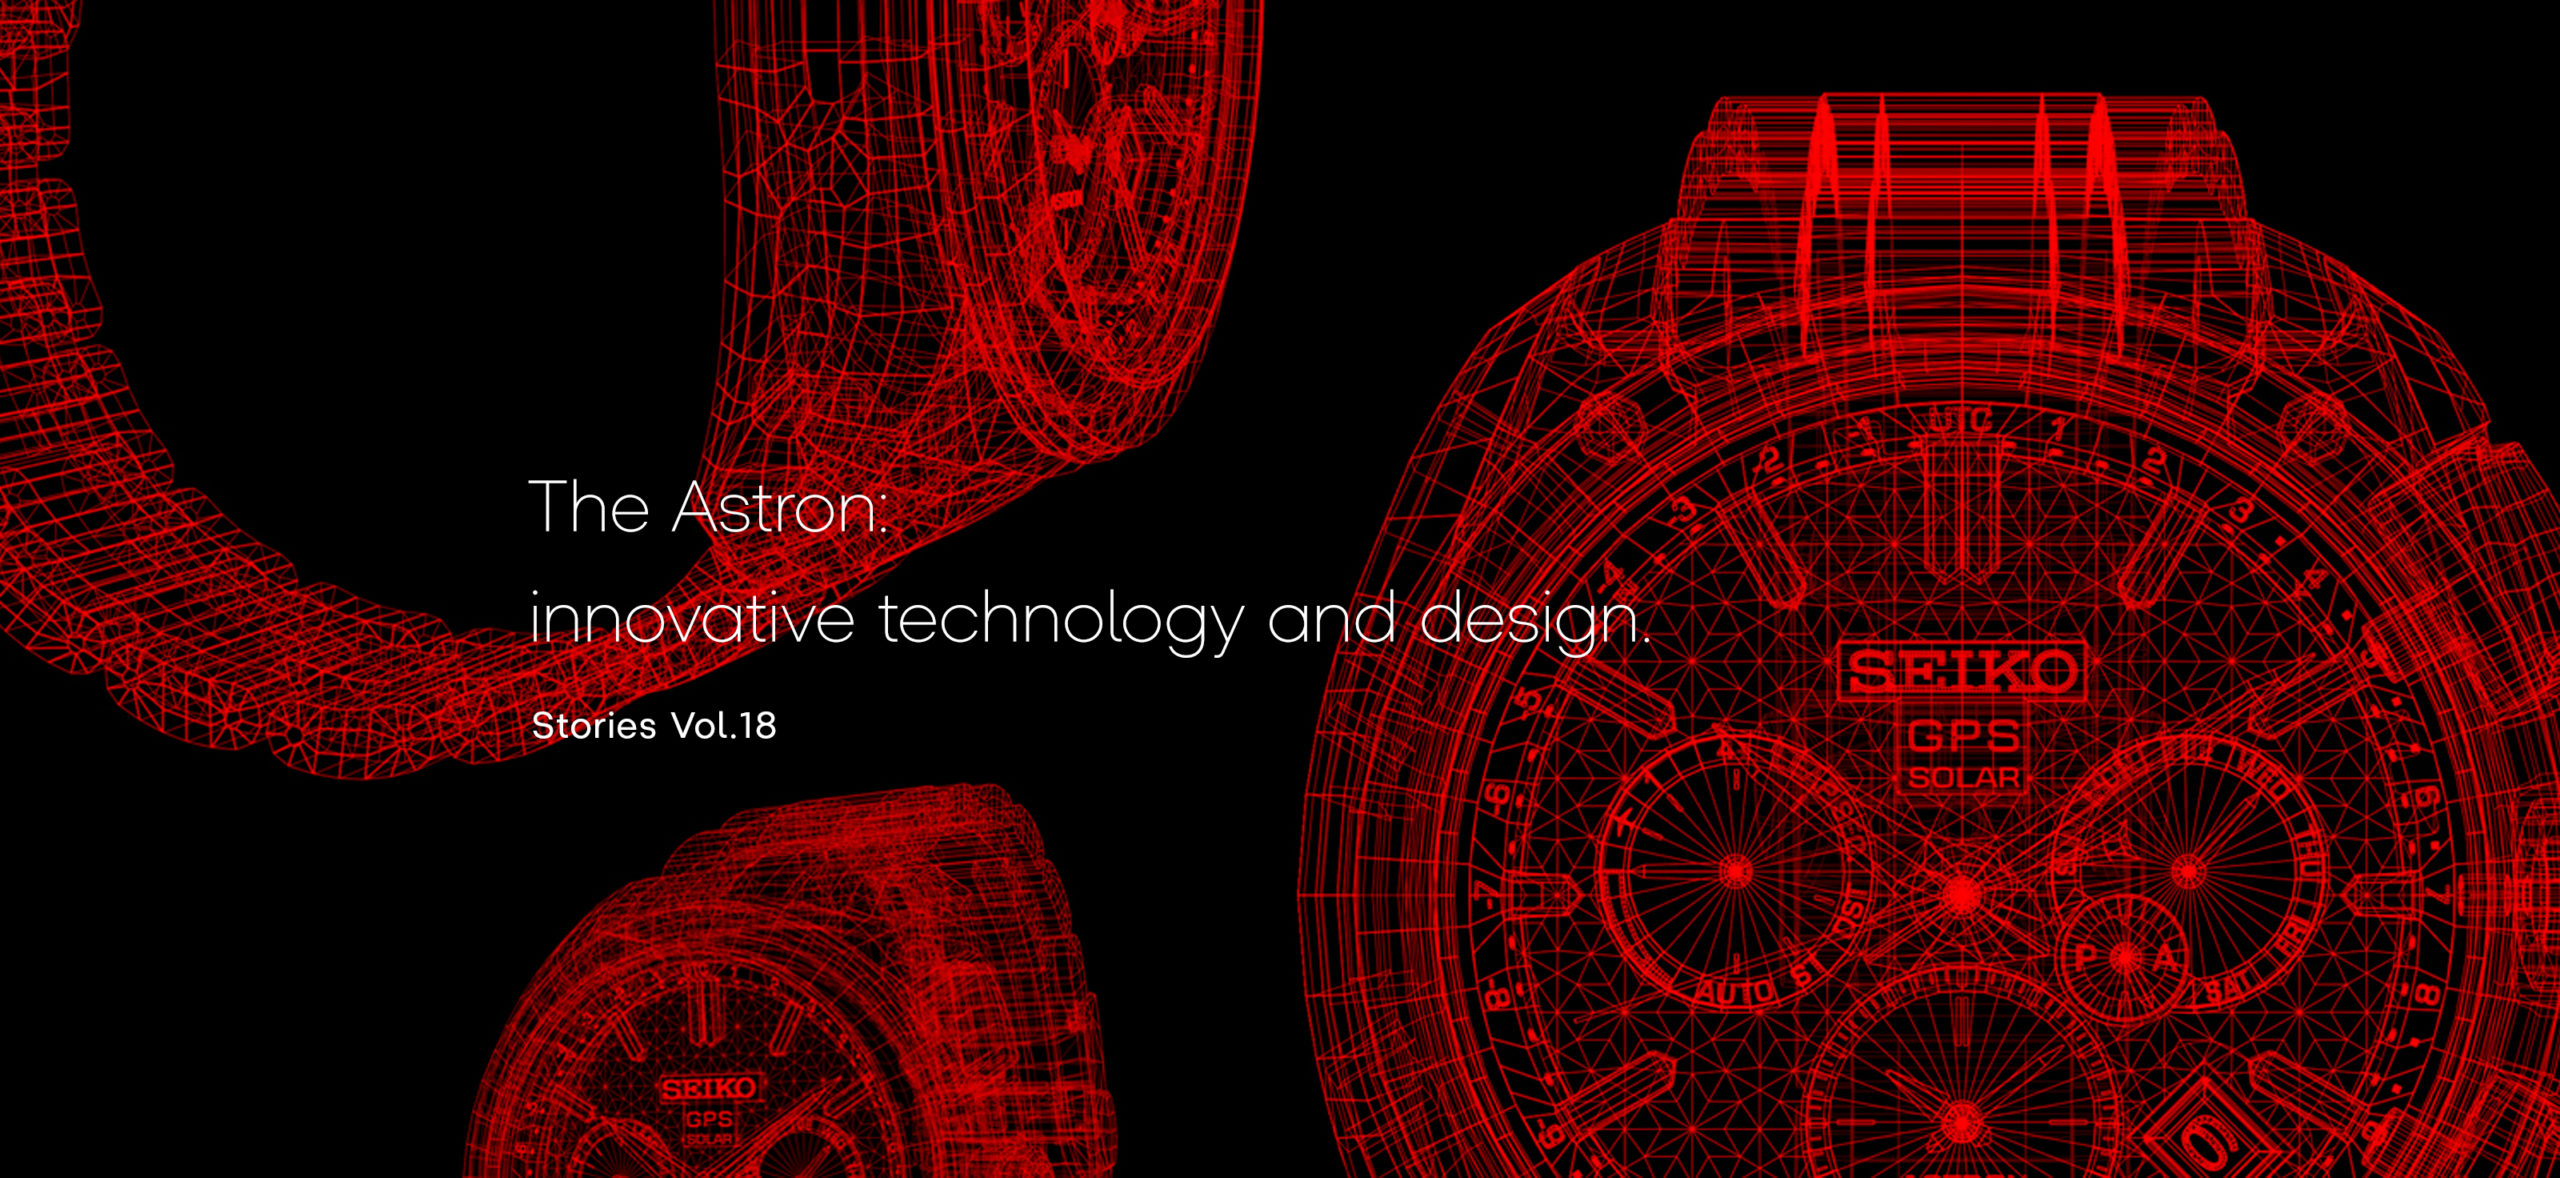 Vol.18 The Astron: innovative technology and design.